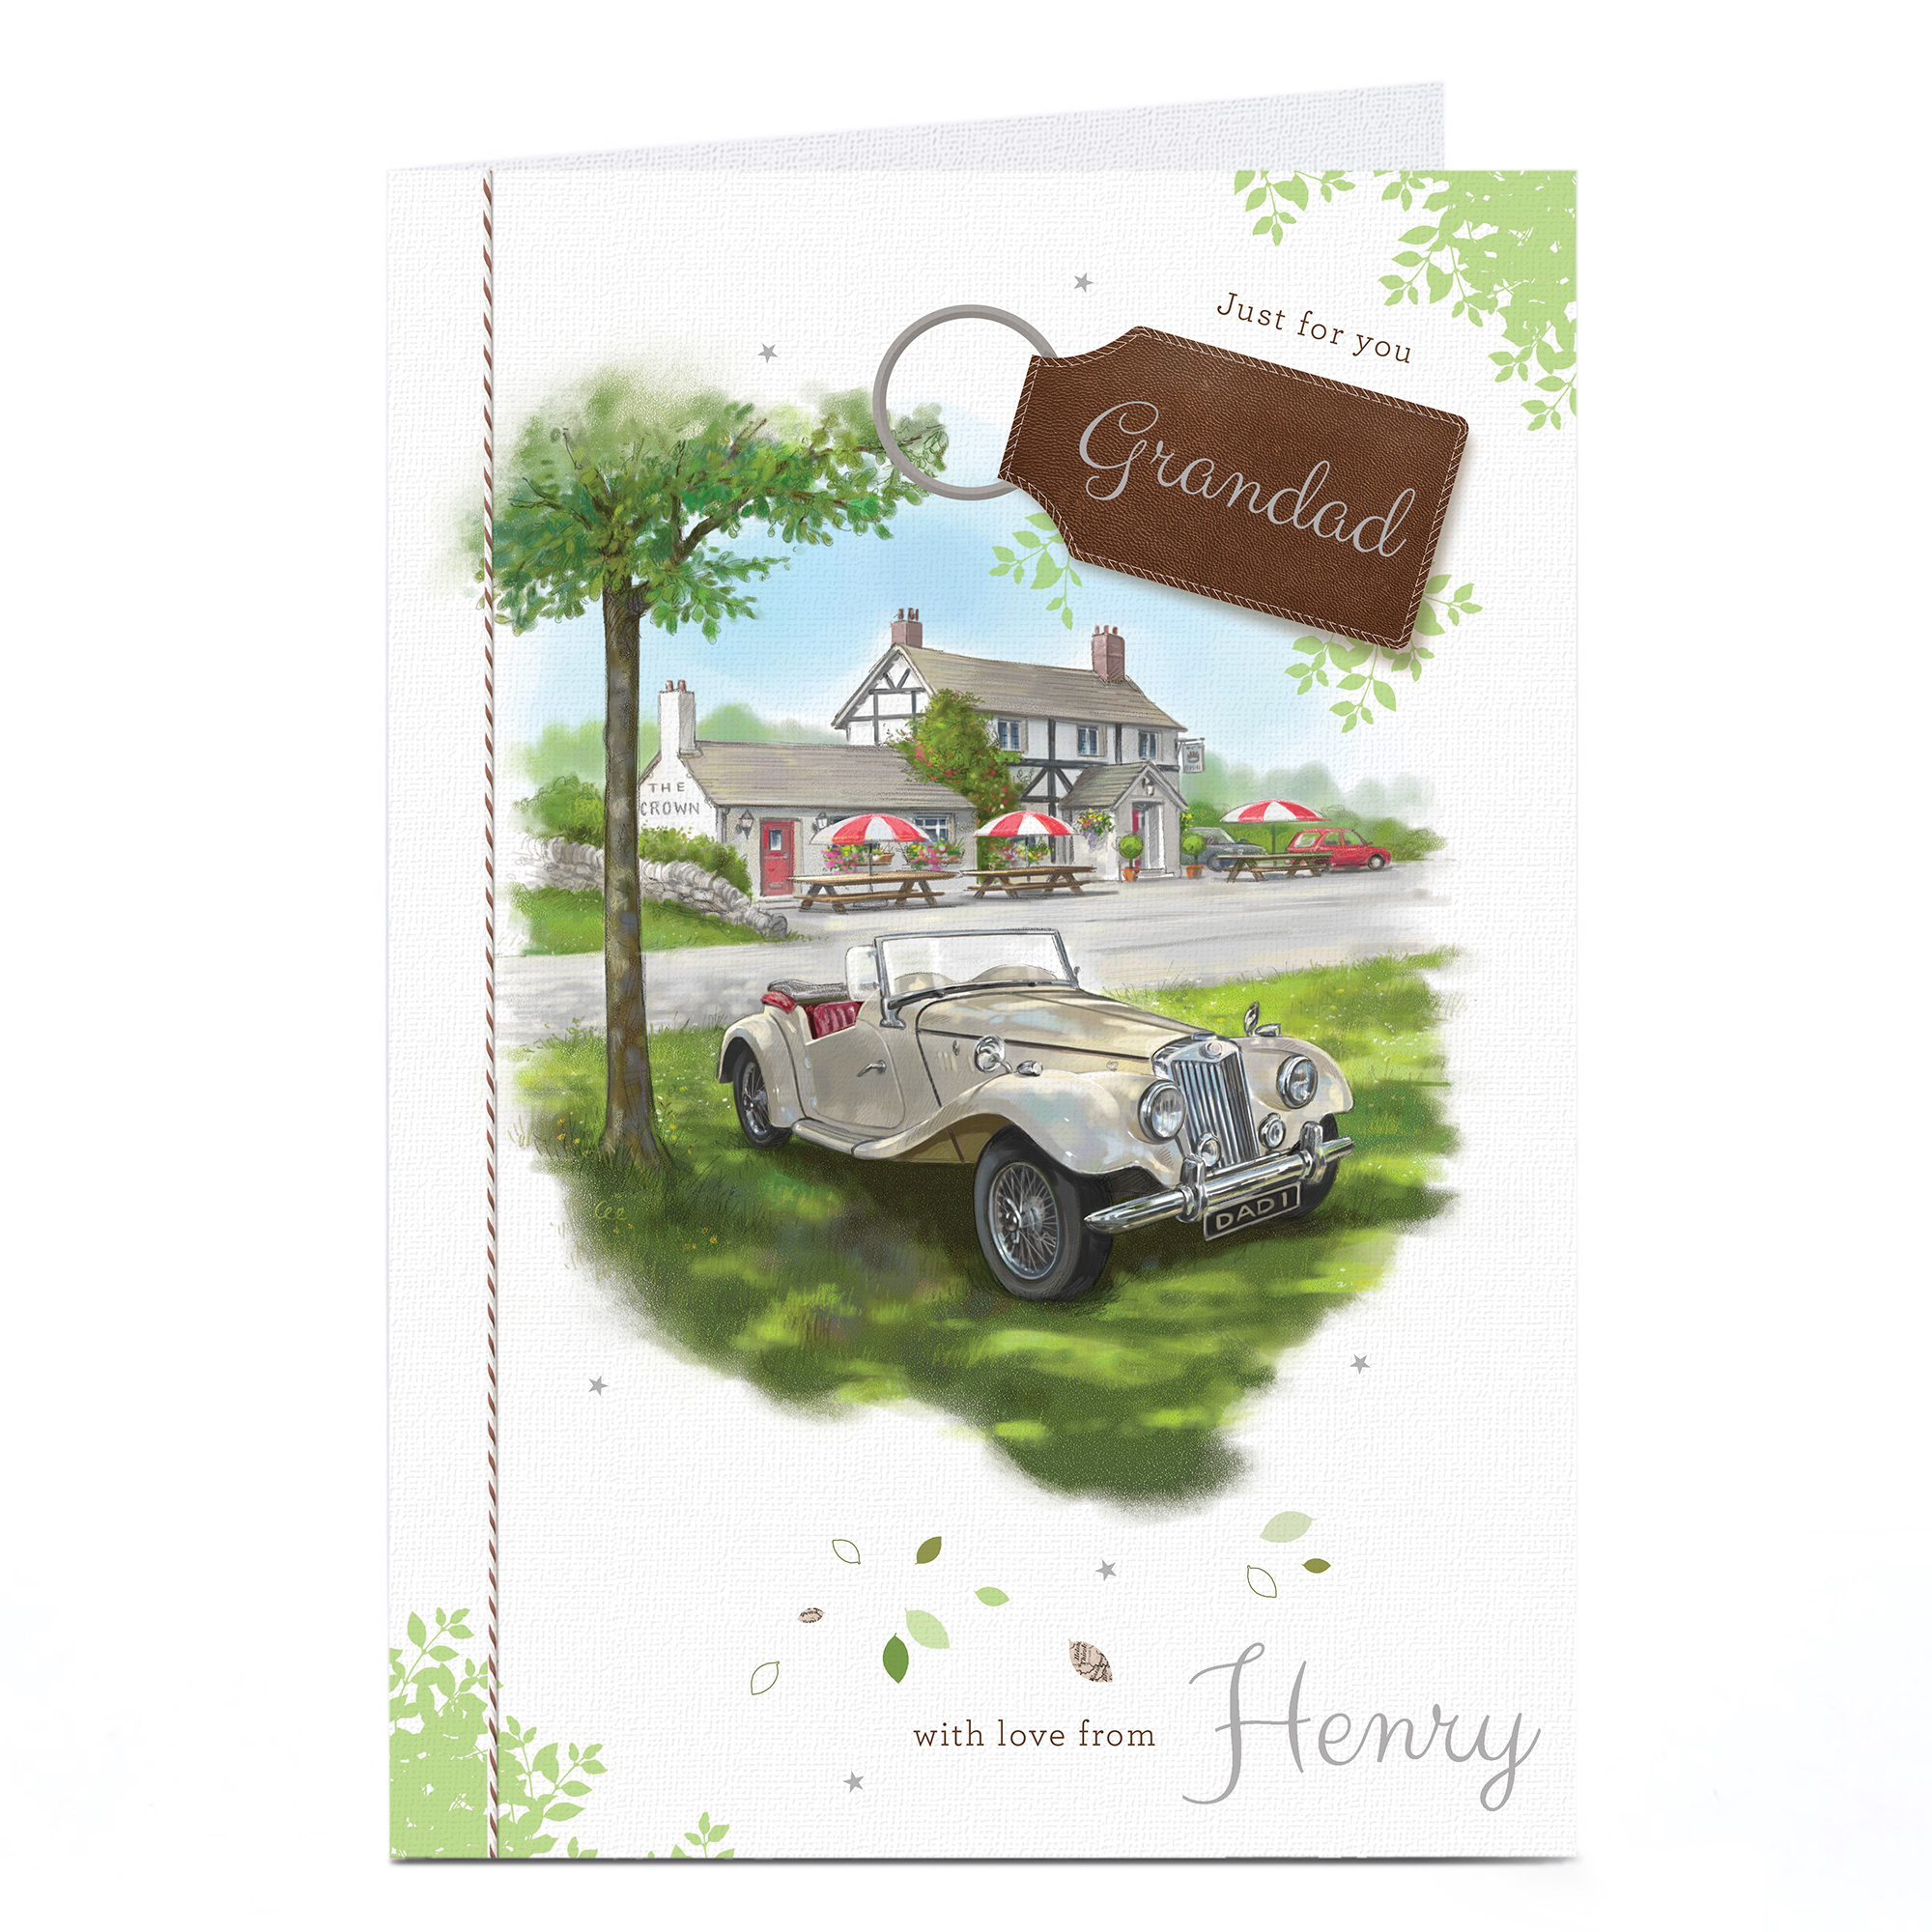 Personalised Birthday Card - Classic Car Just For You, Grandad